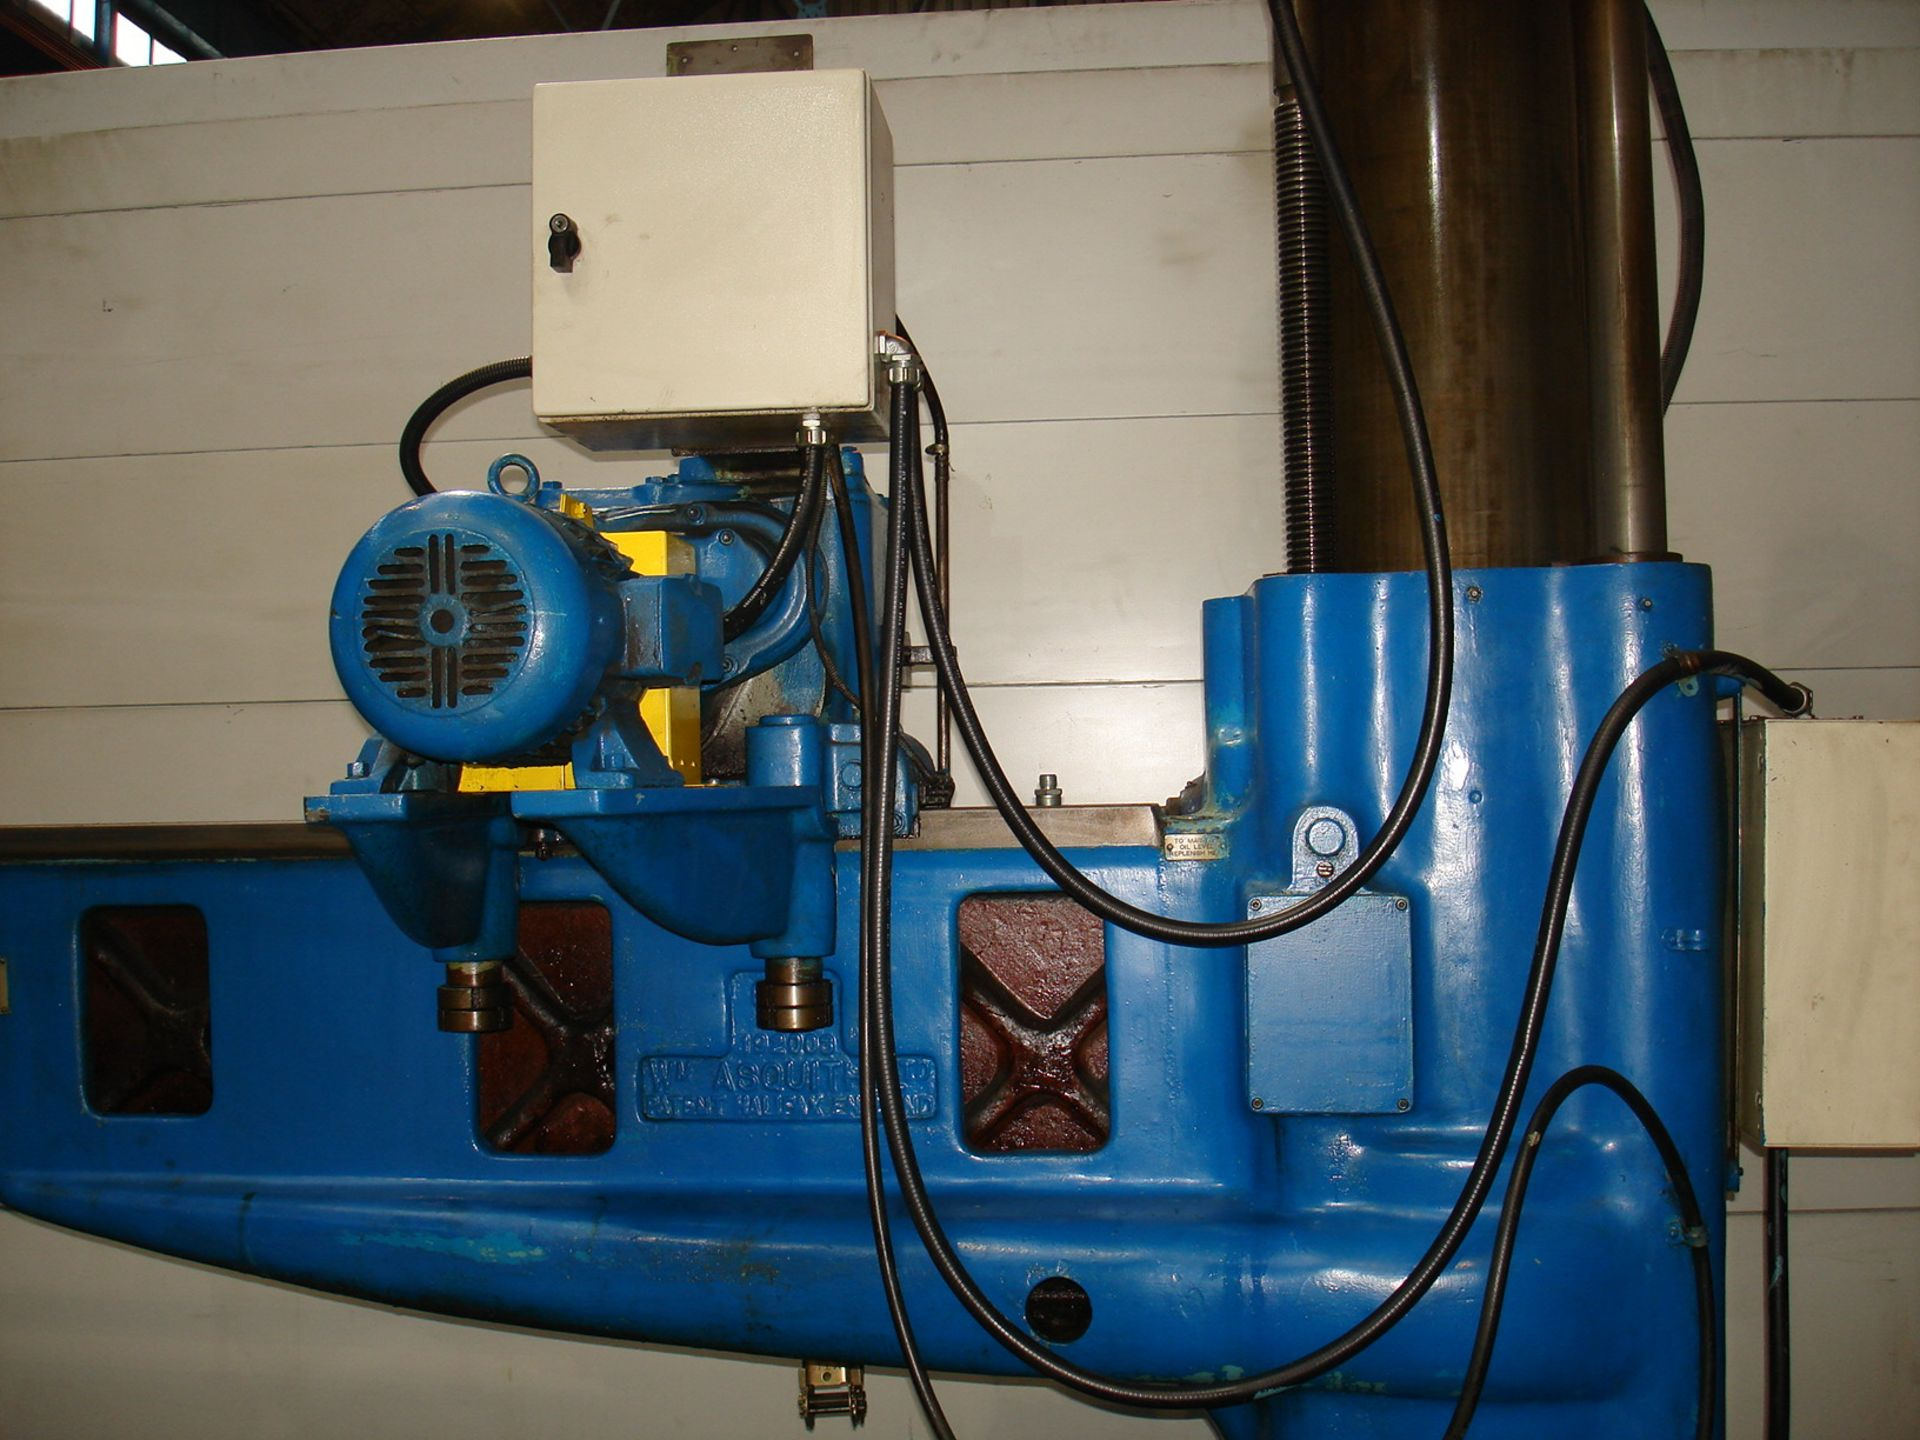 Asquith OD1 6ft Radial Arm Drill. Arm lenght 6ft. Spindle 5 Morse Taper. Speeds 8-800rpm. Box Table. - Image 6 of 7